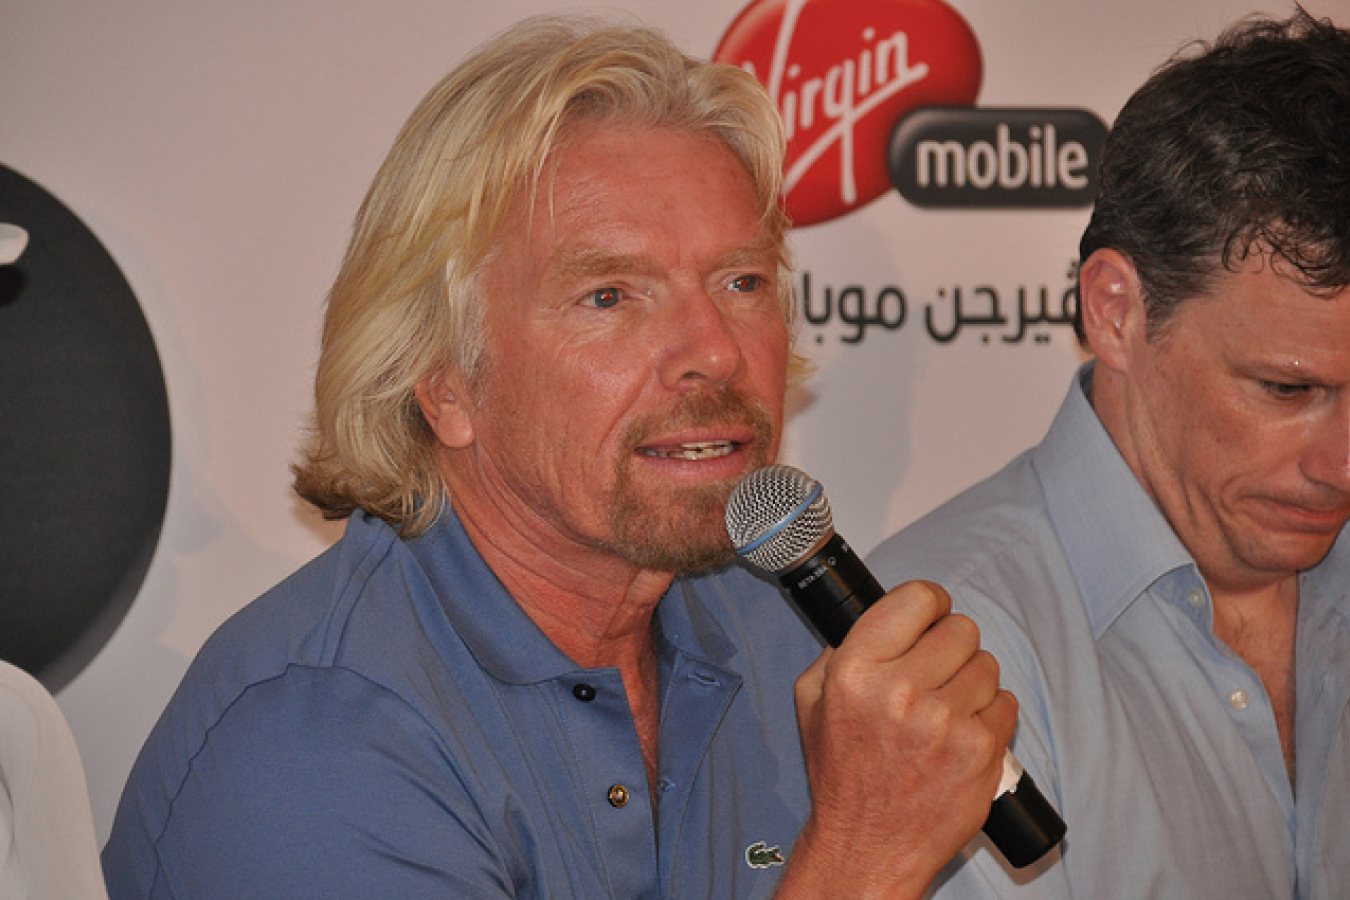 Sir Richard Branson founder of Virgin known for his pro Migrant views